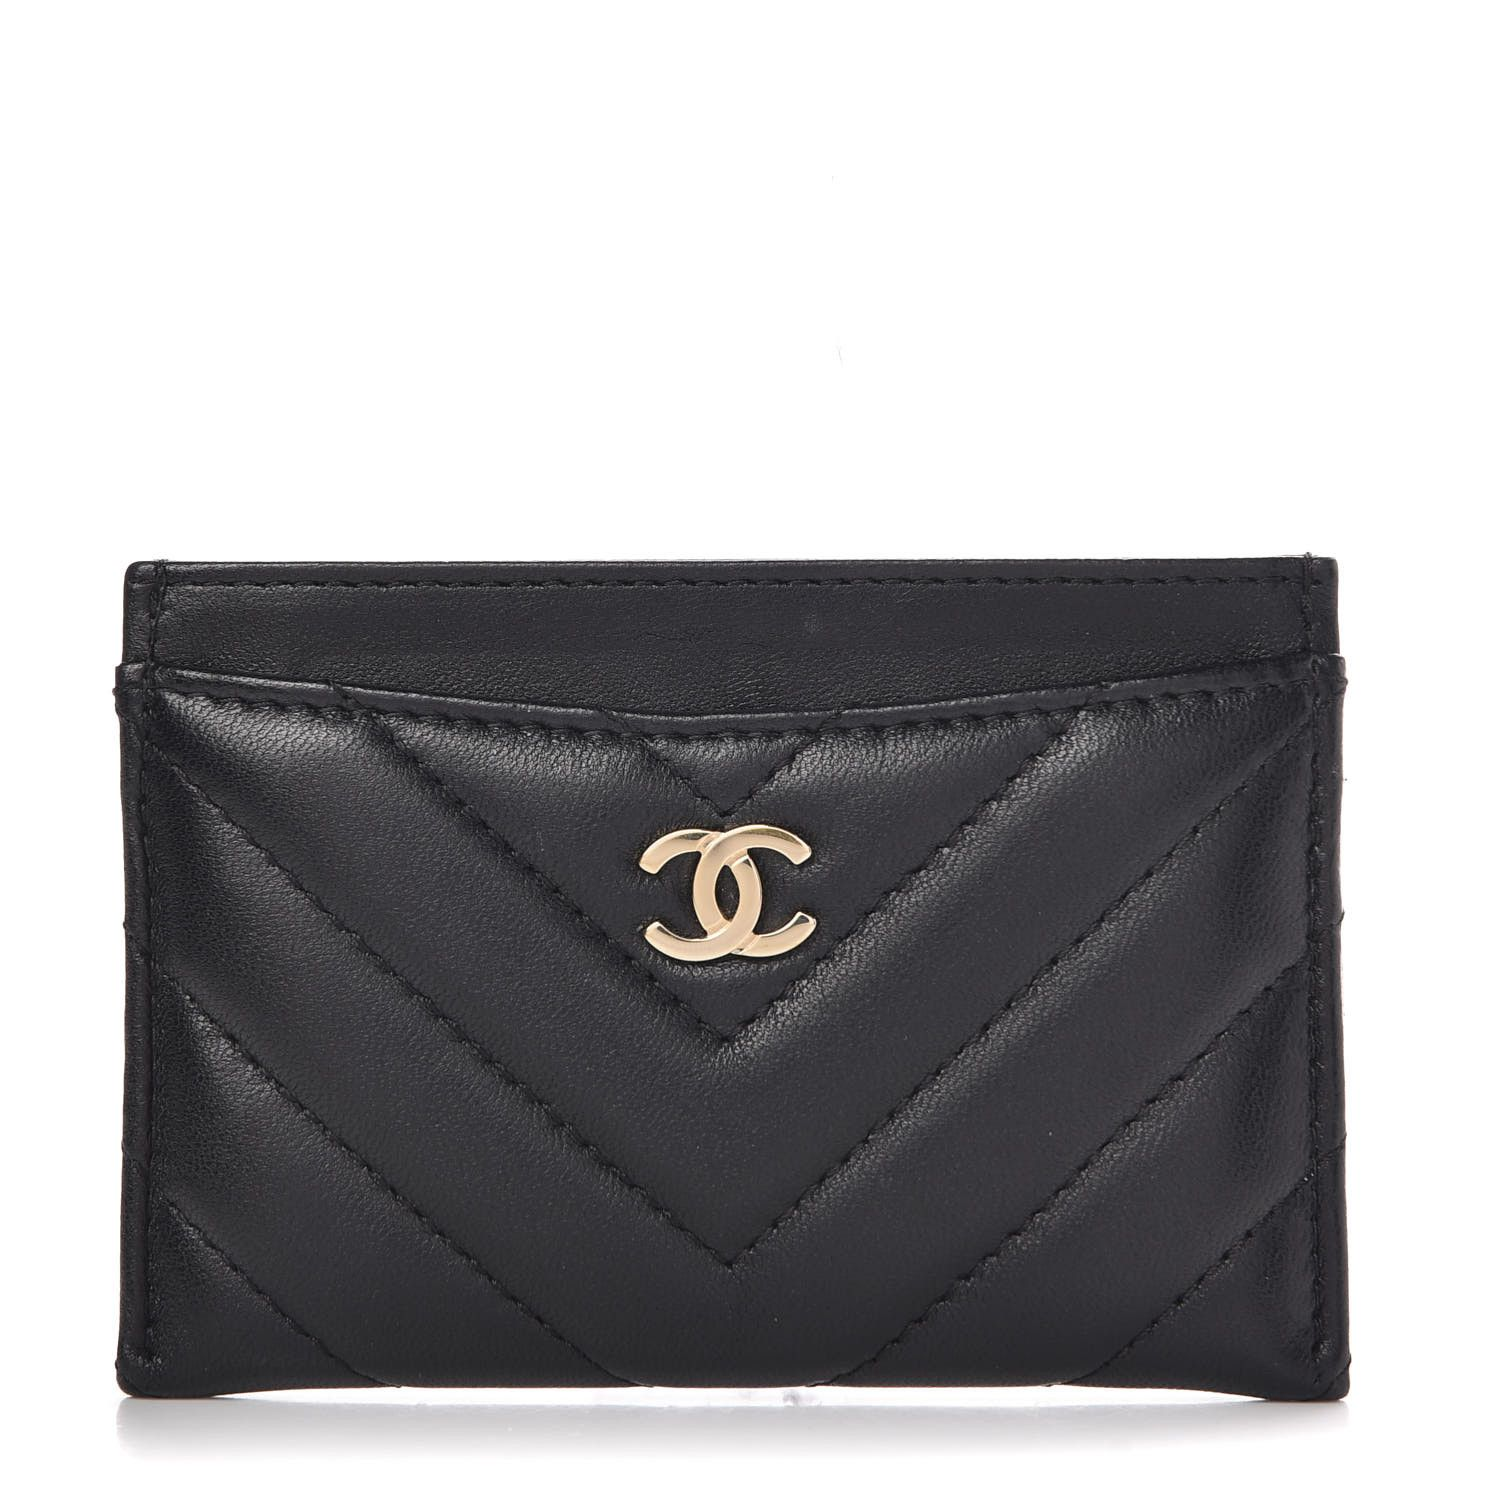 CHANEL Lambskin Chevron Quilted Card Holder Black Chanel